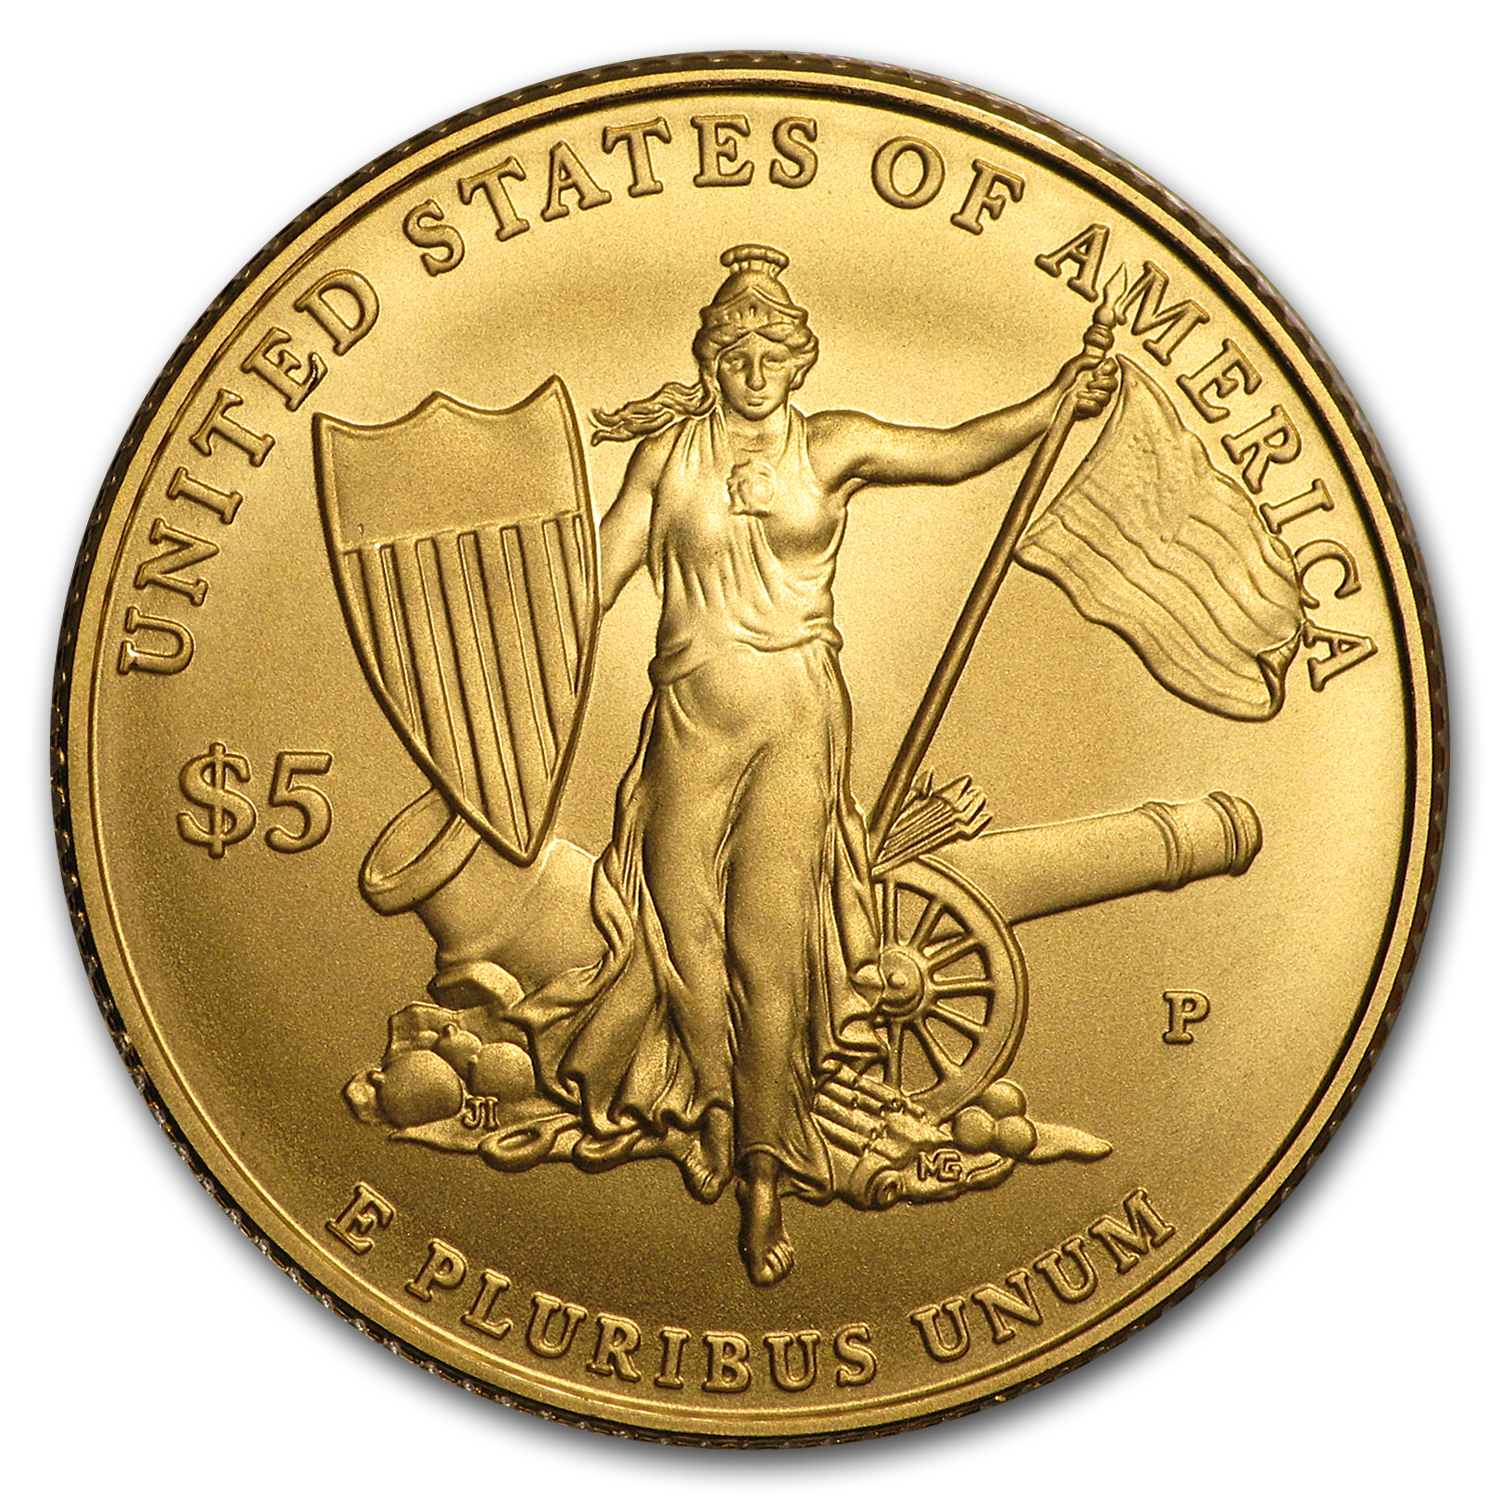 2011-P Medal of Honor - $5 Gold Commemorative - BU